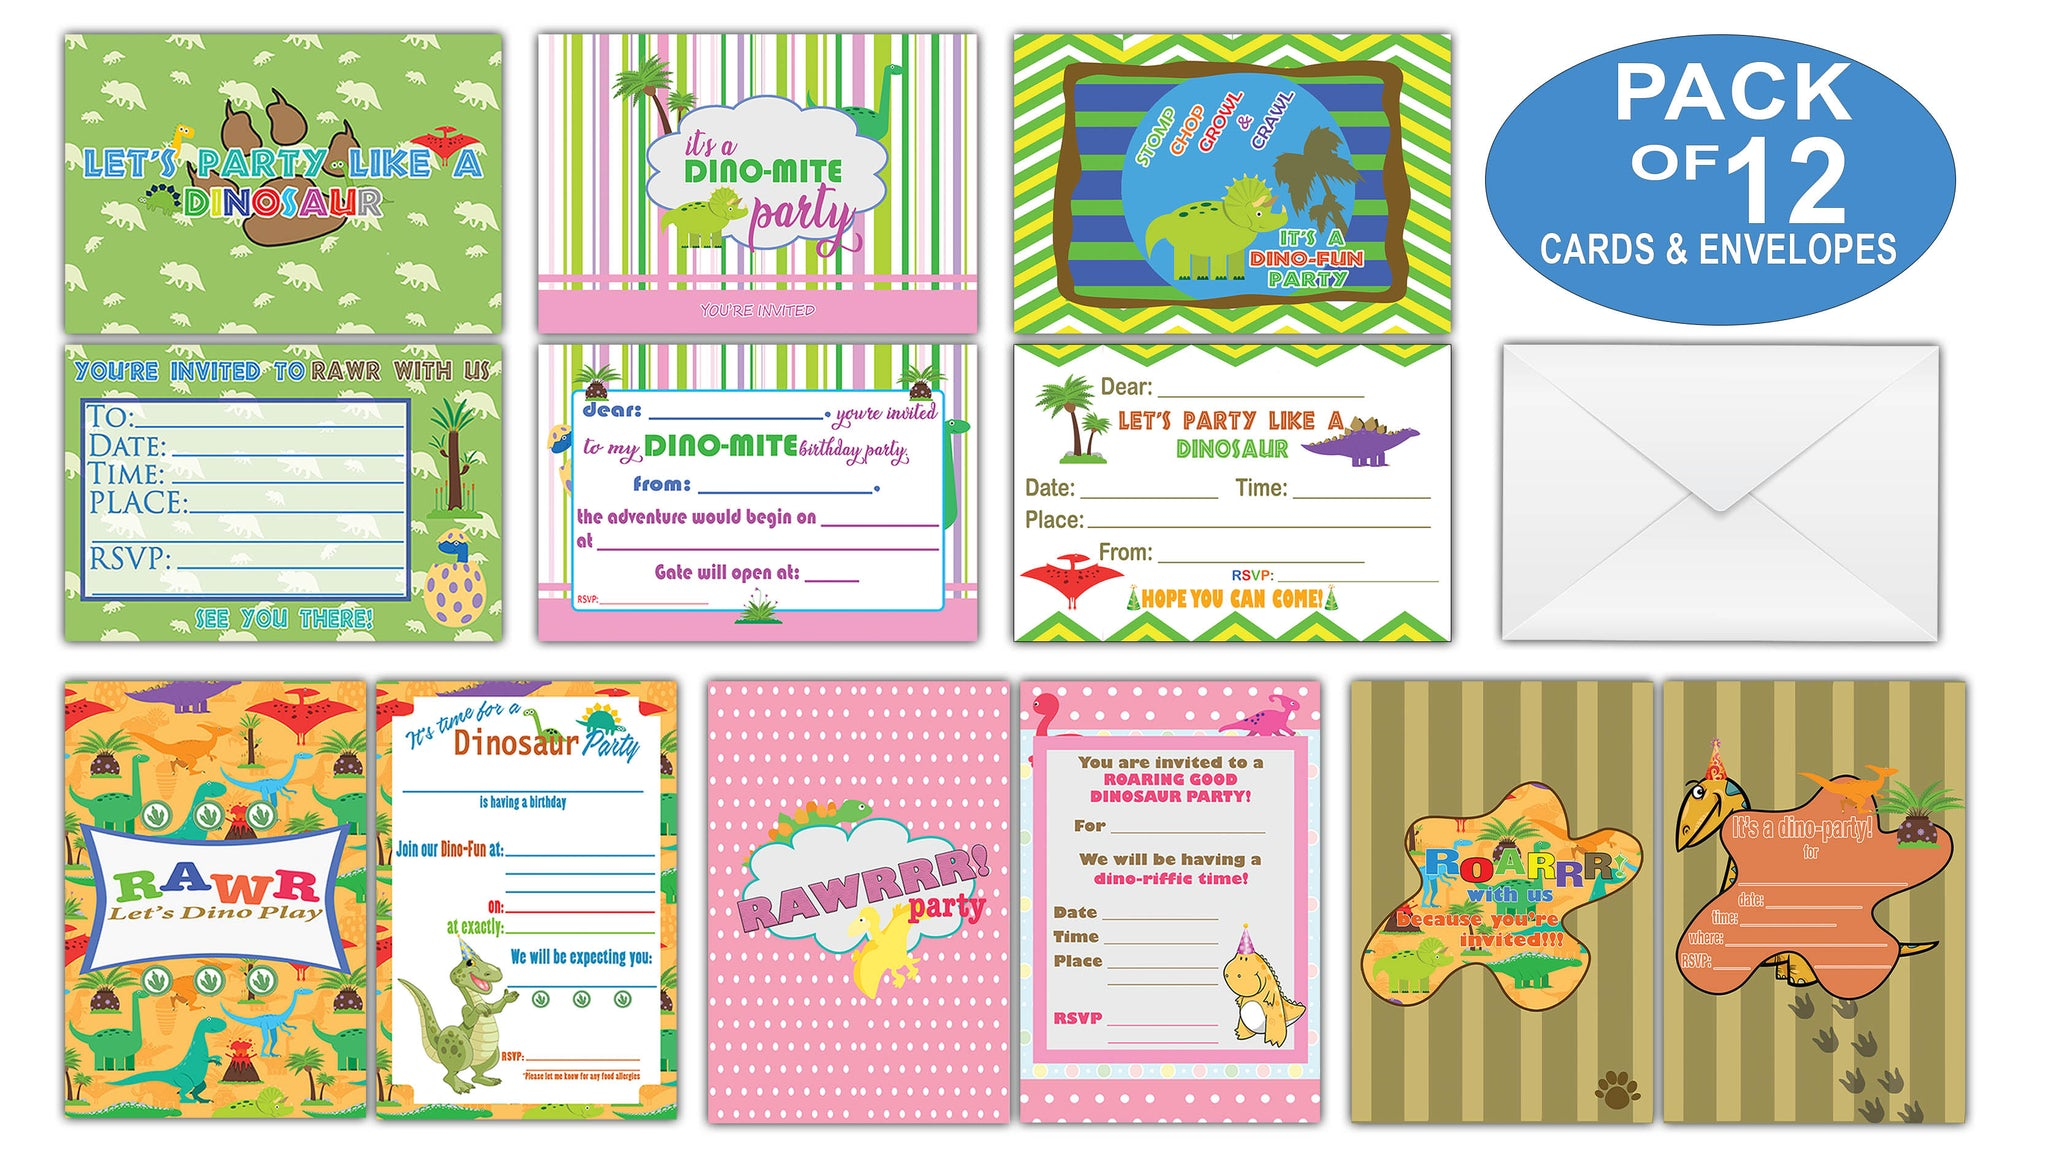 Creanoso Dinosaur Theme Birthday Invitation Cards 12 Pack